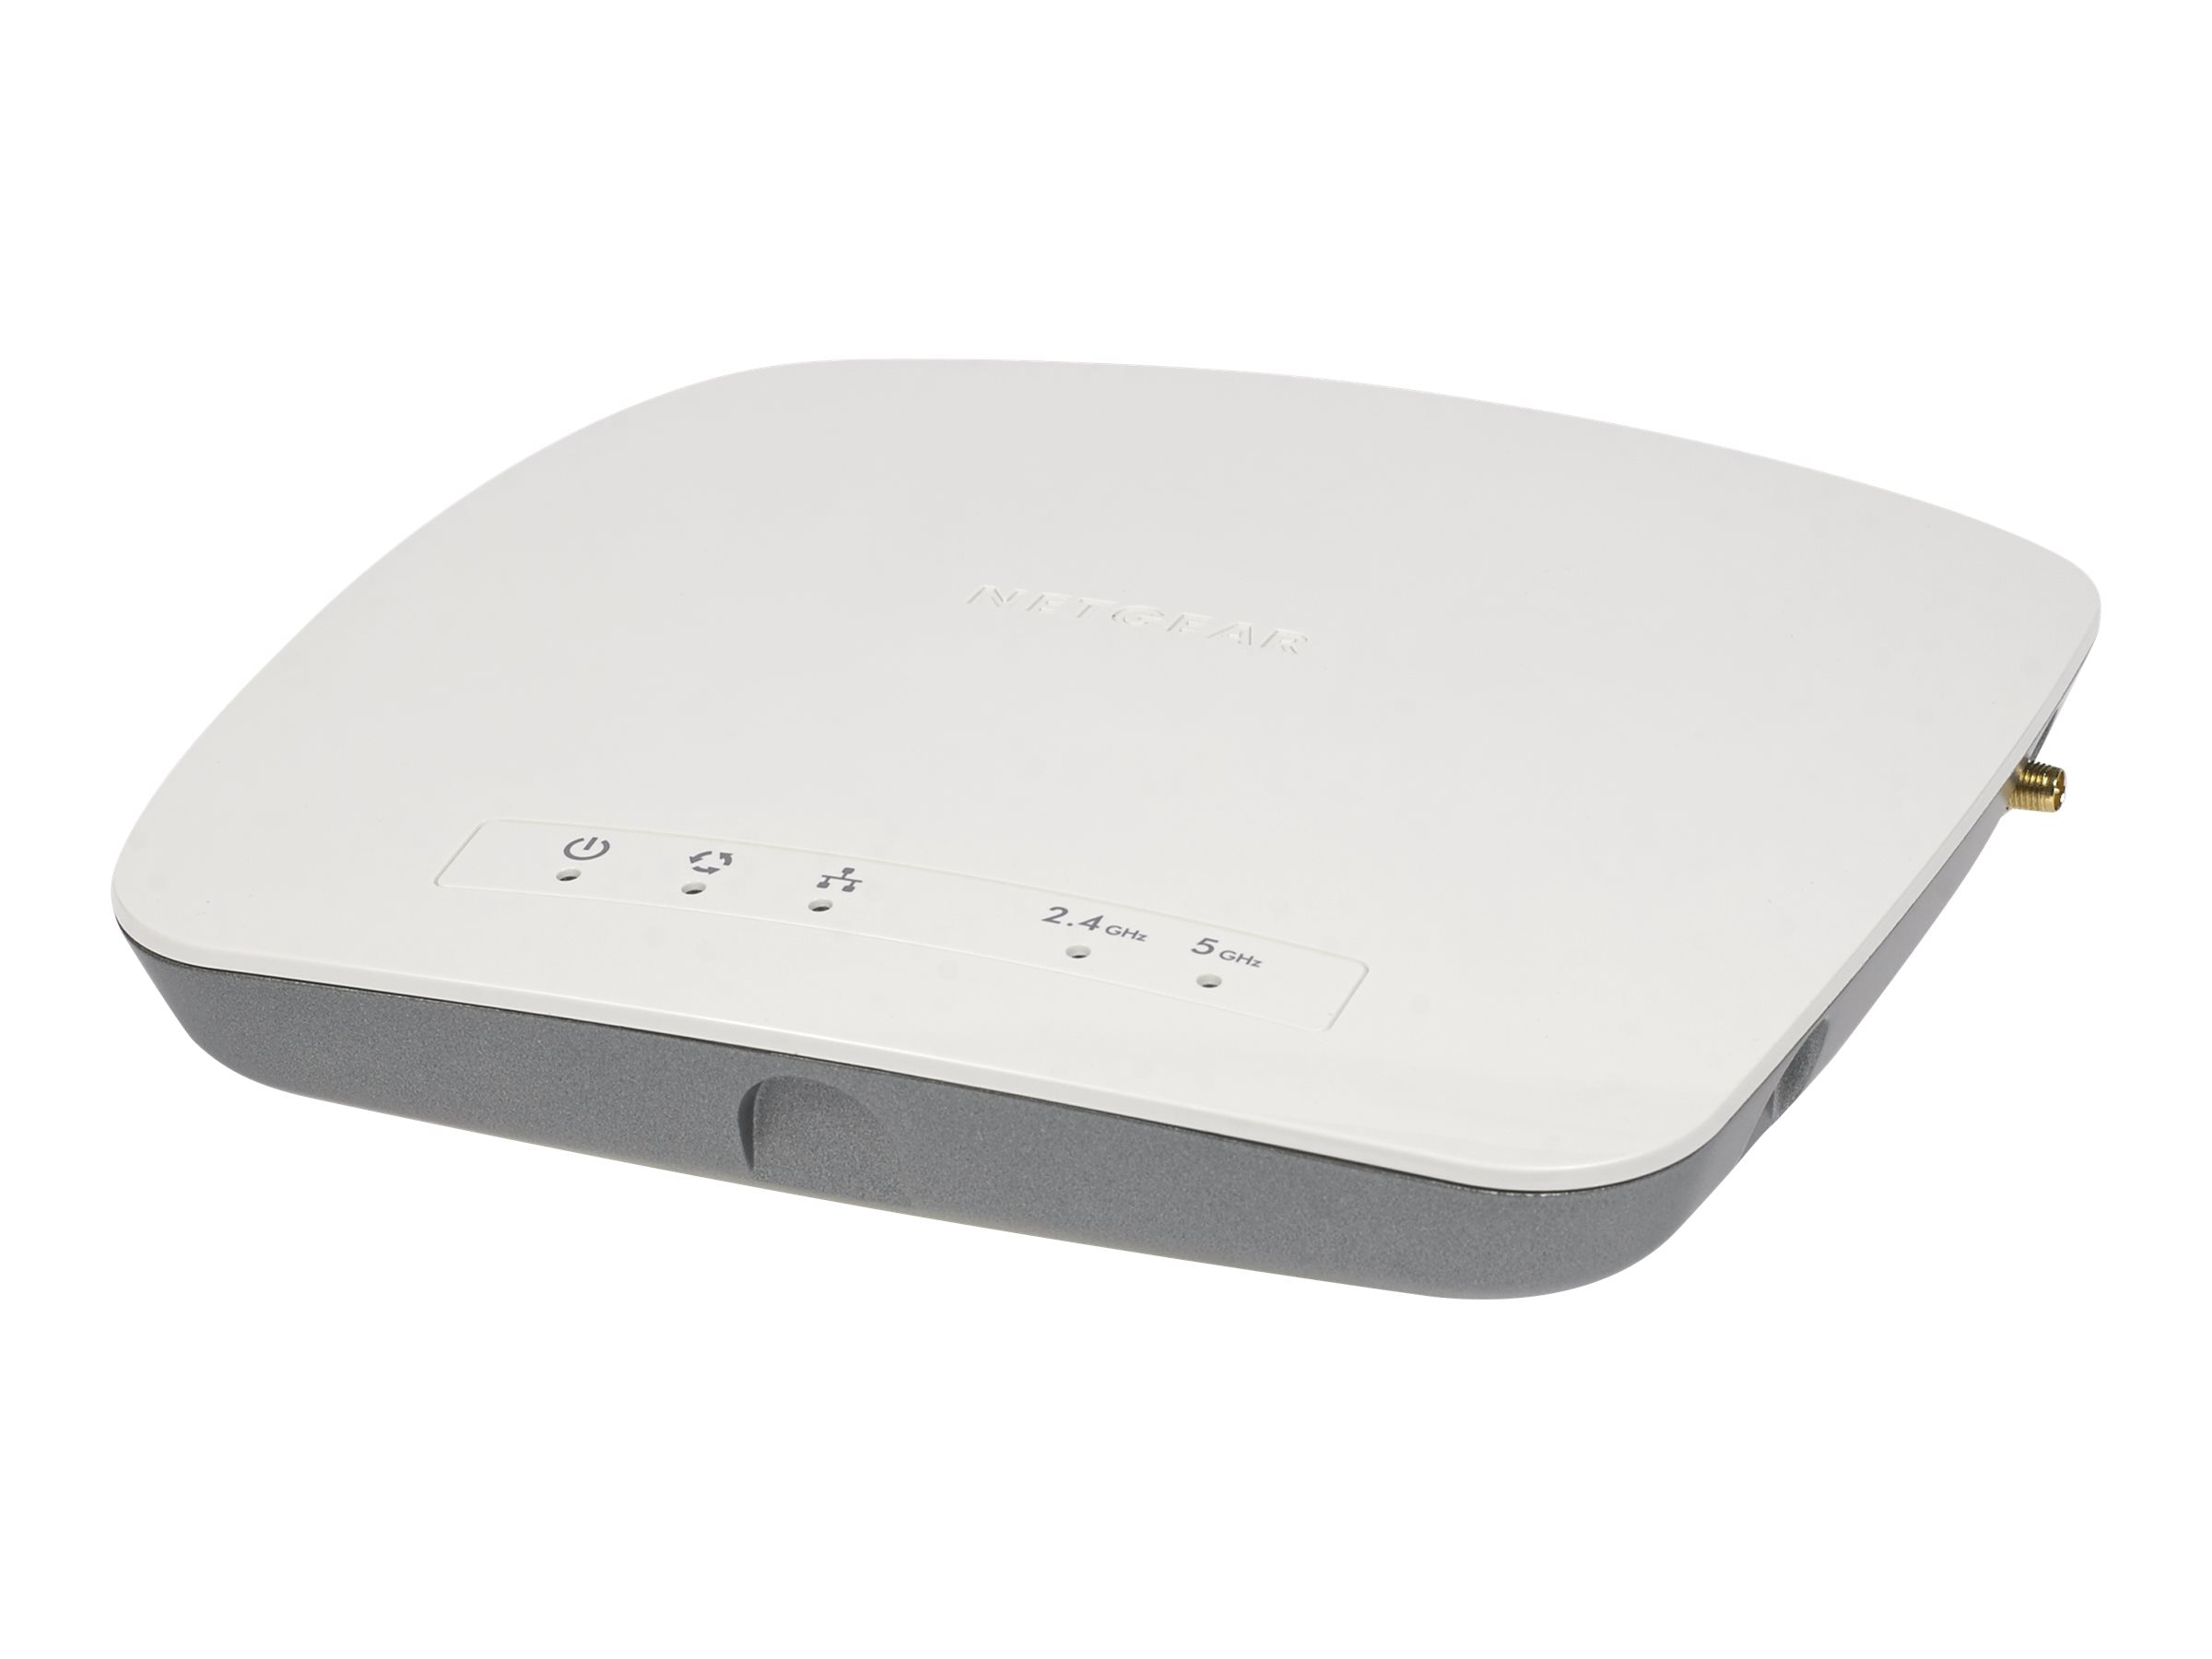 Netgear ProSAFE Business 3 x 3 Dual Band Wireless-AC Access Point, WAC730-100NAS